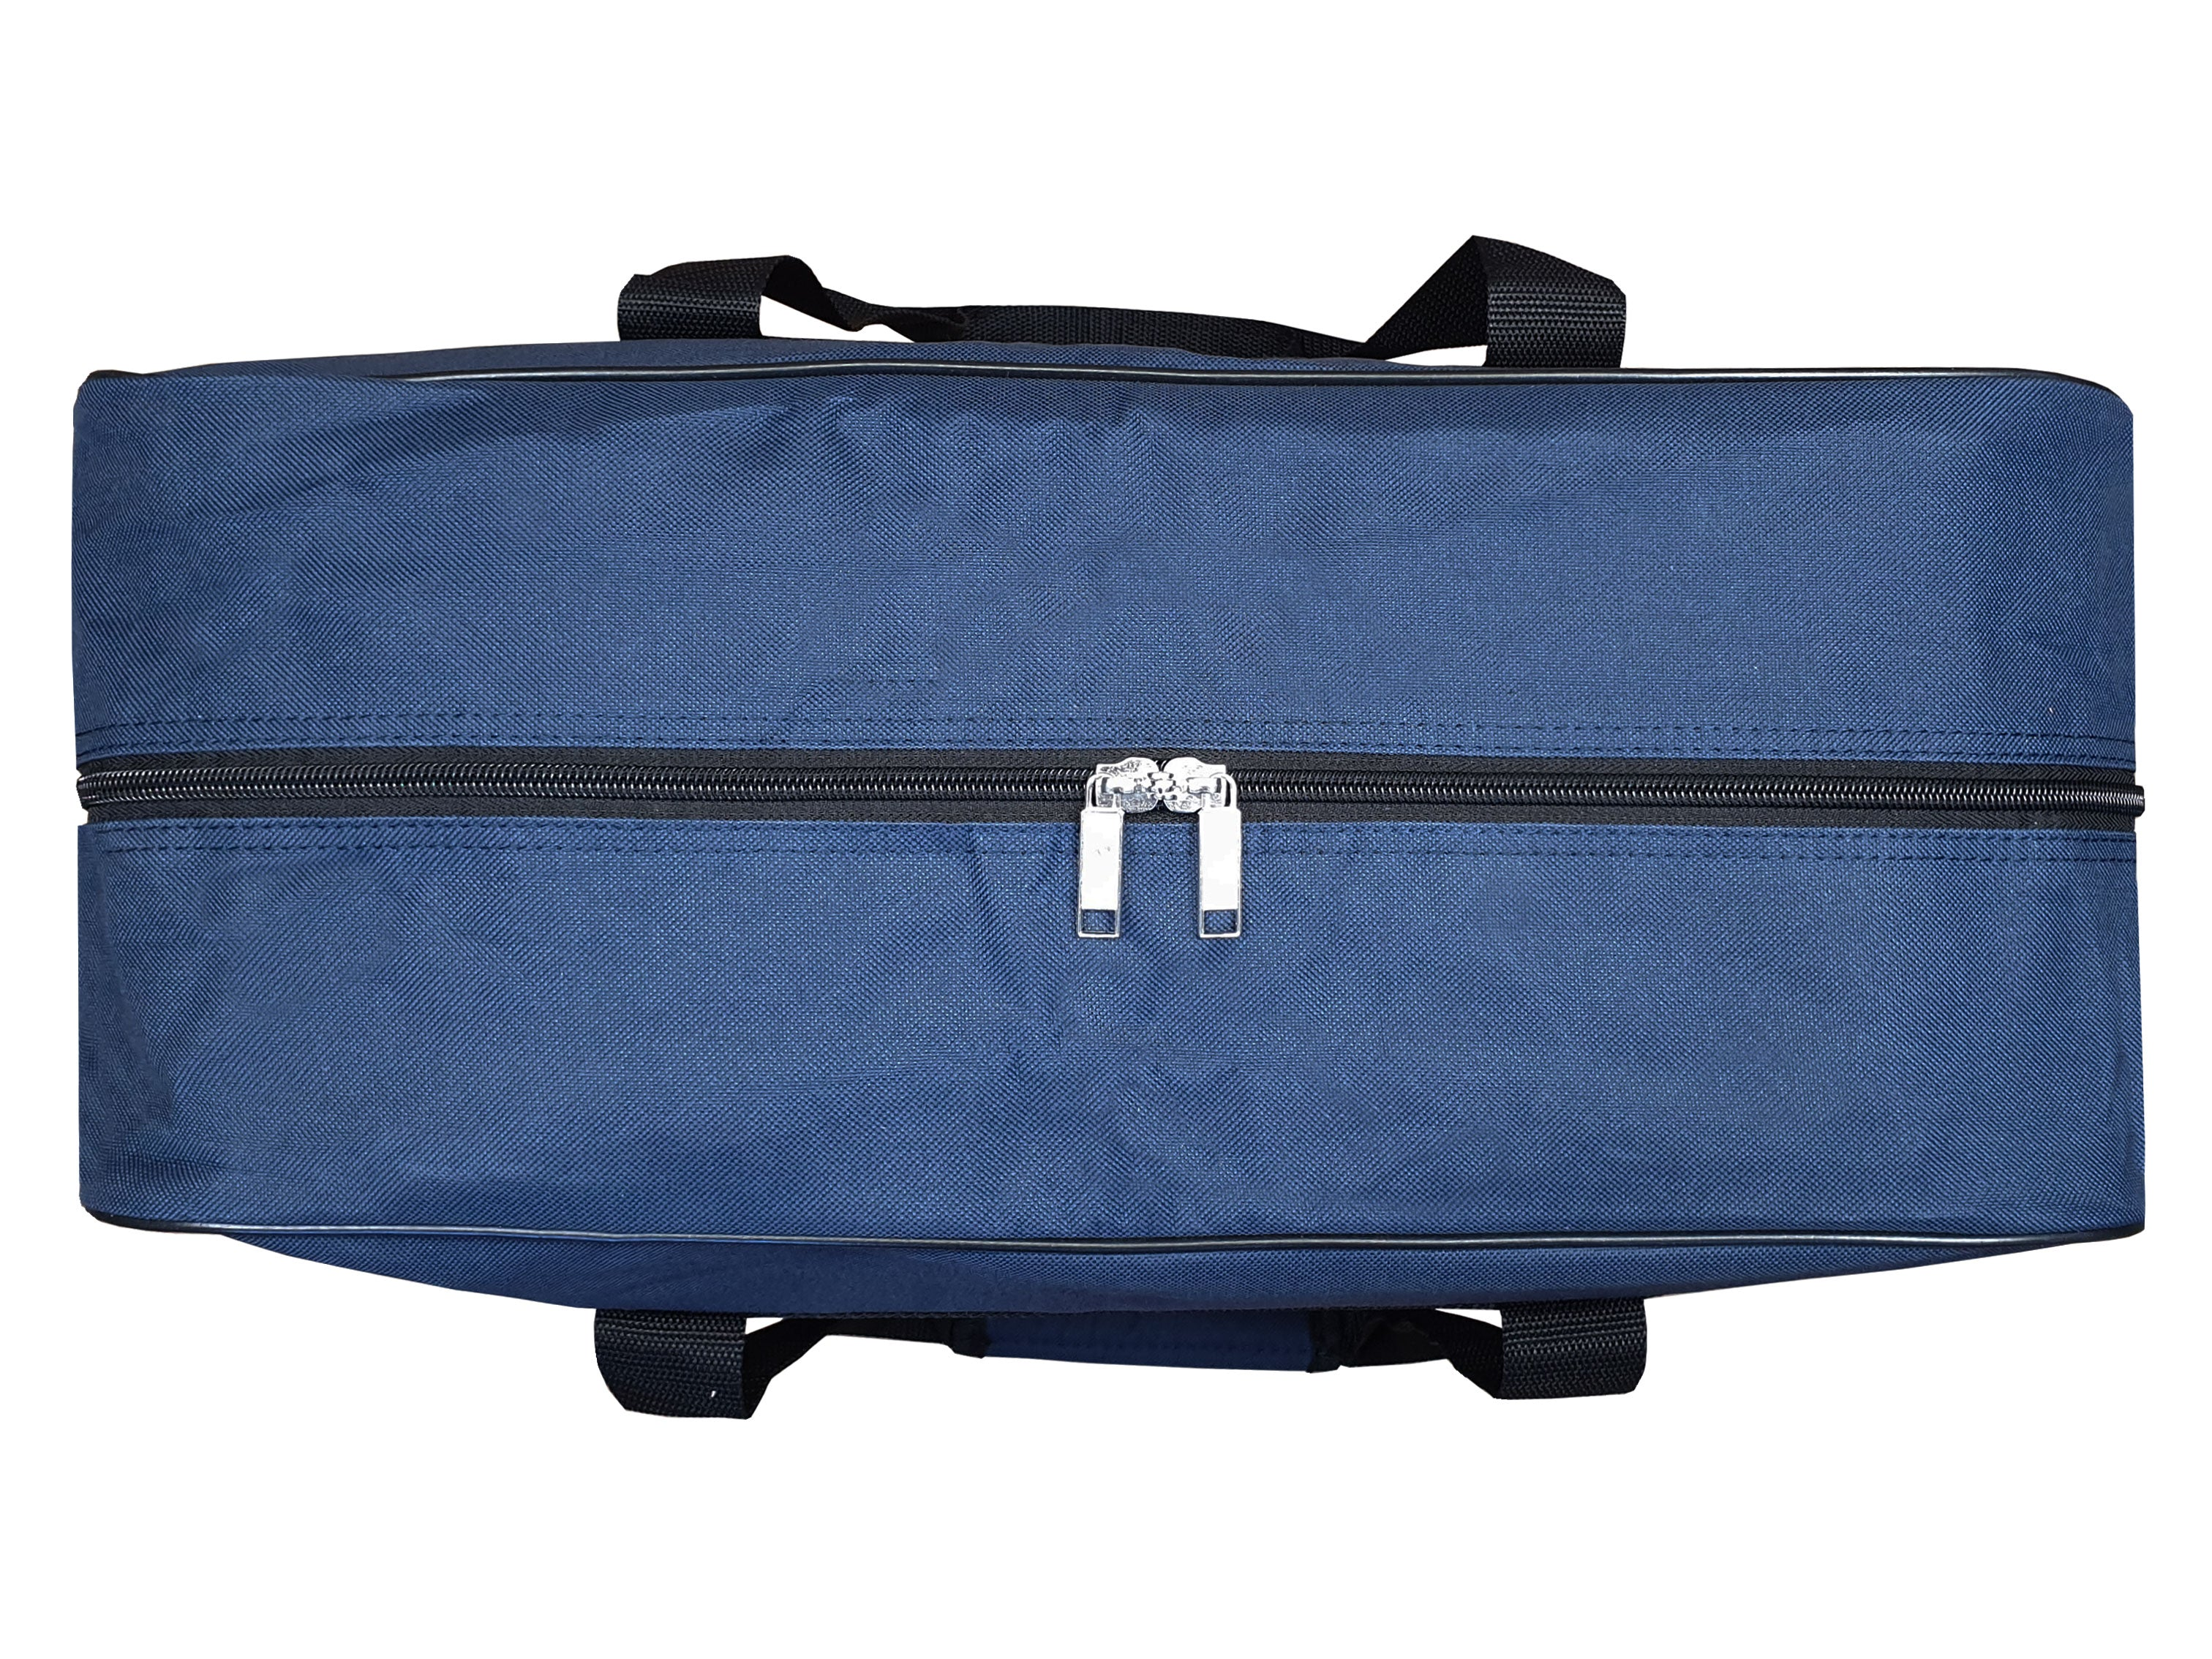 Ryanair Perfect Sized Second Bag, Holiday Holdall Overhead Luggage R56